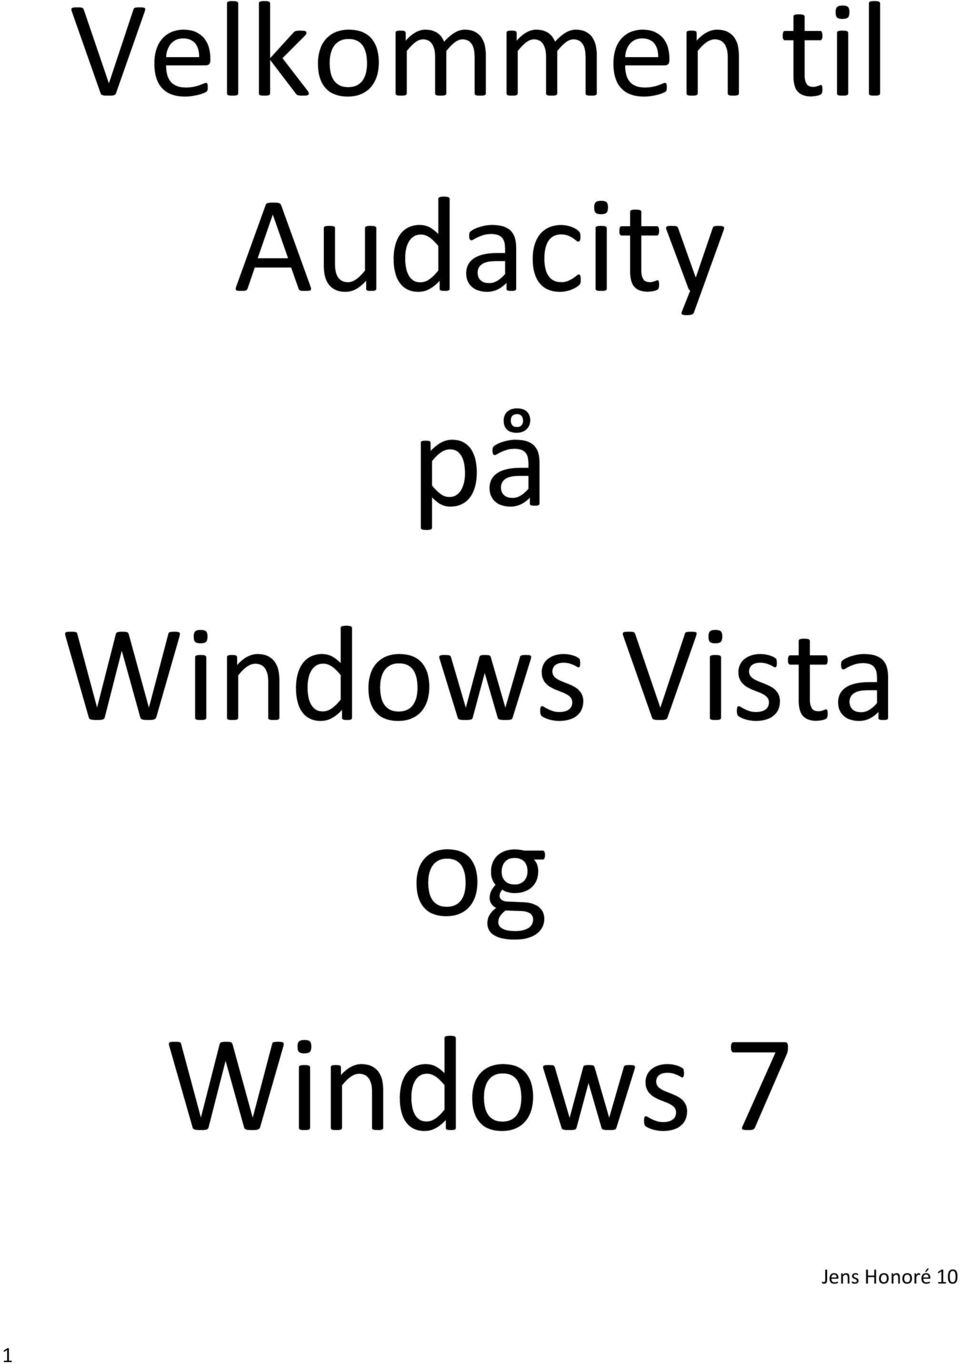 Windows Vista og